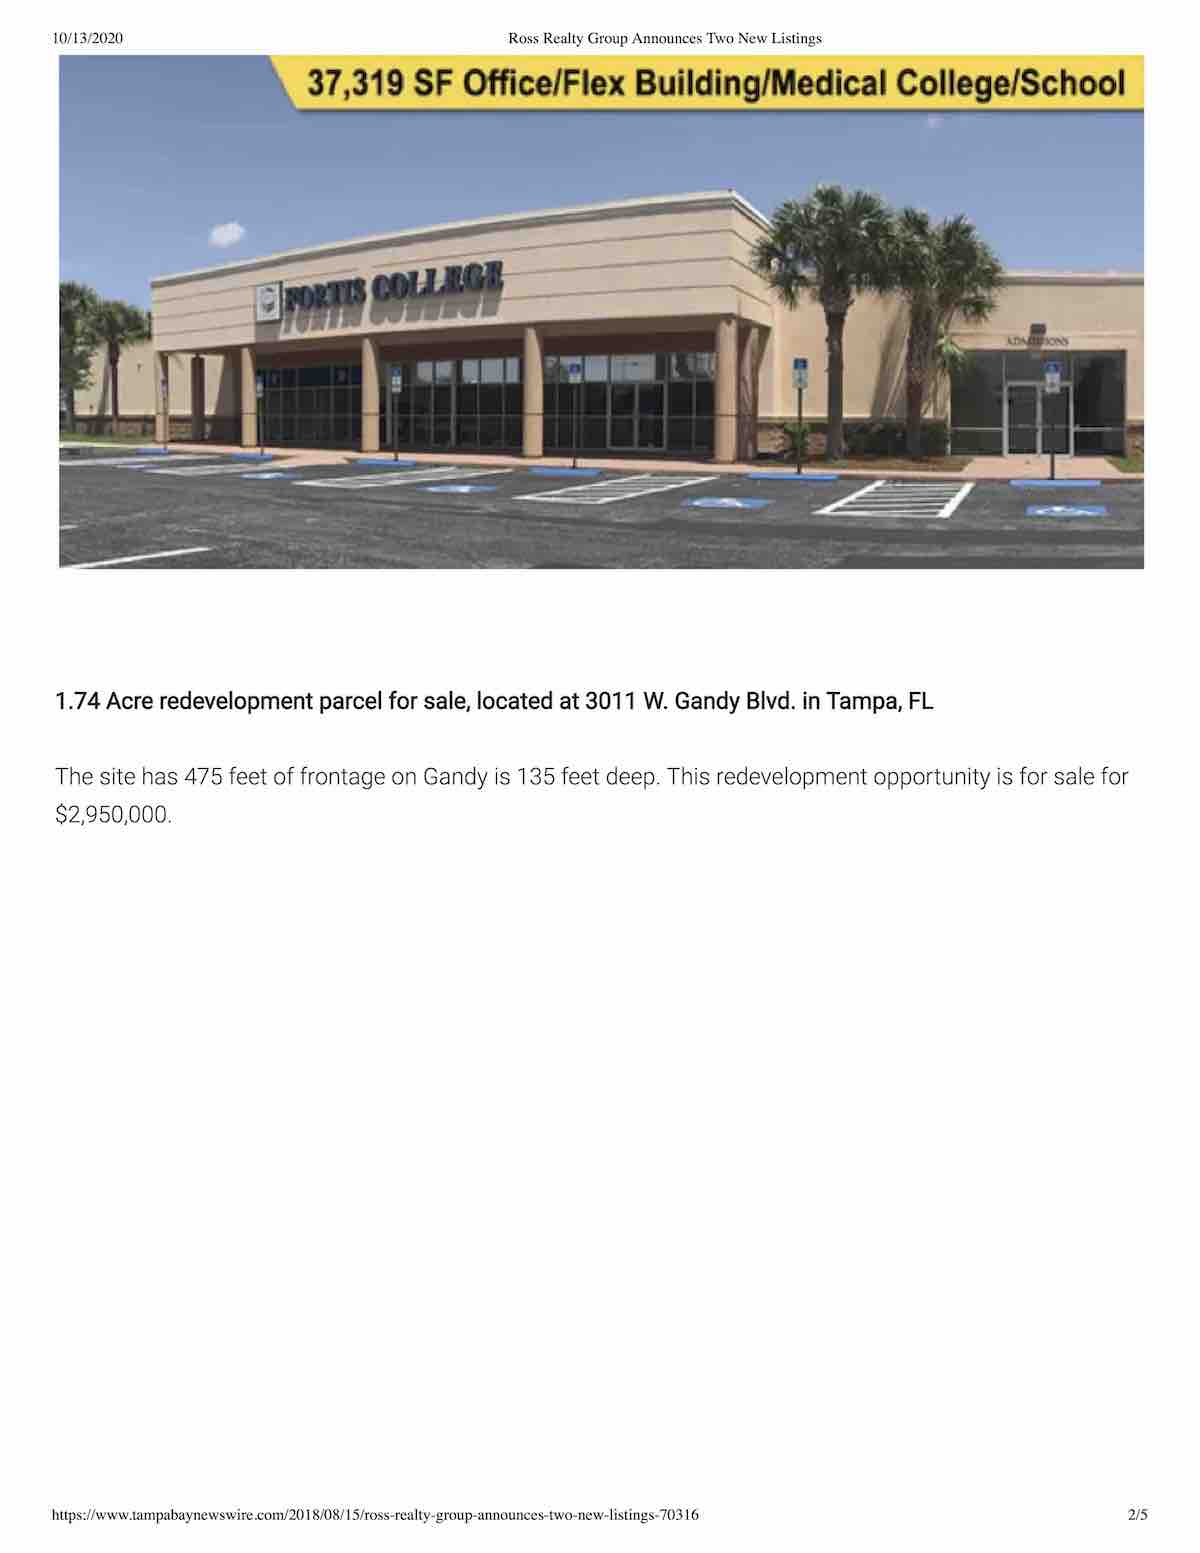 Tampa Commercial Real Estate - Ross Realty Group Announces Two New Listings P1